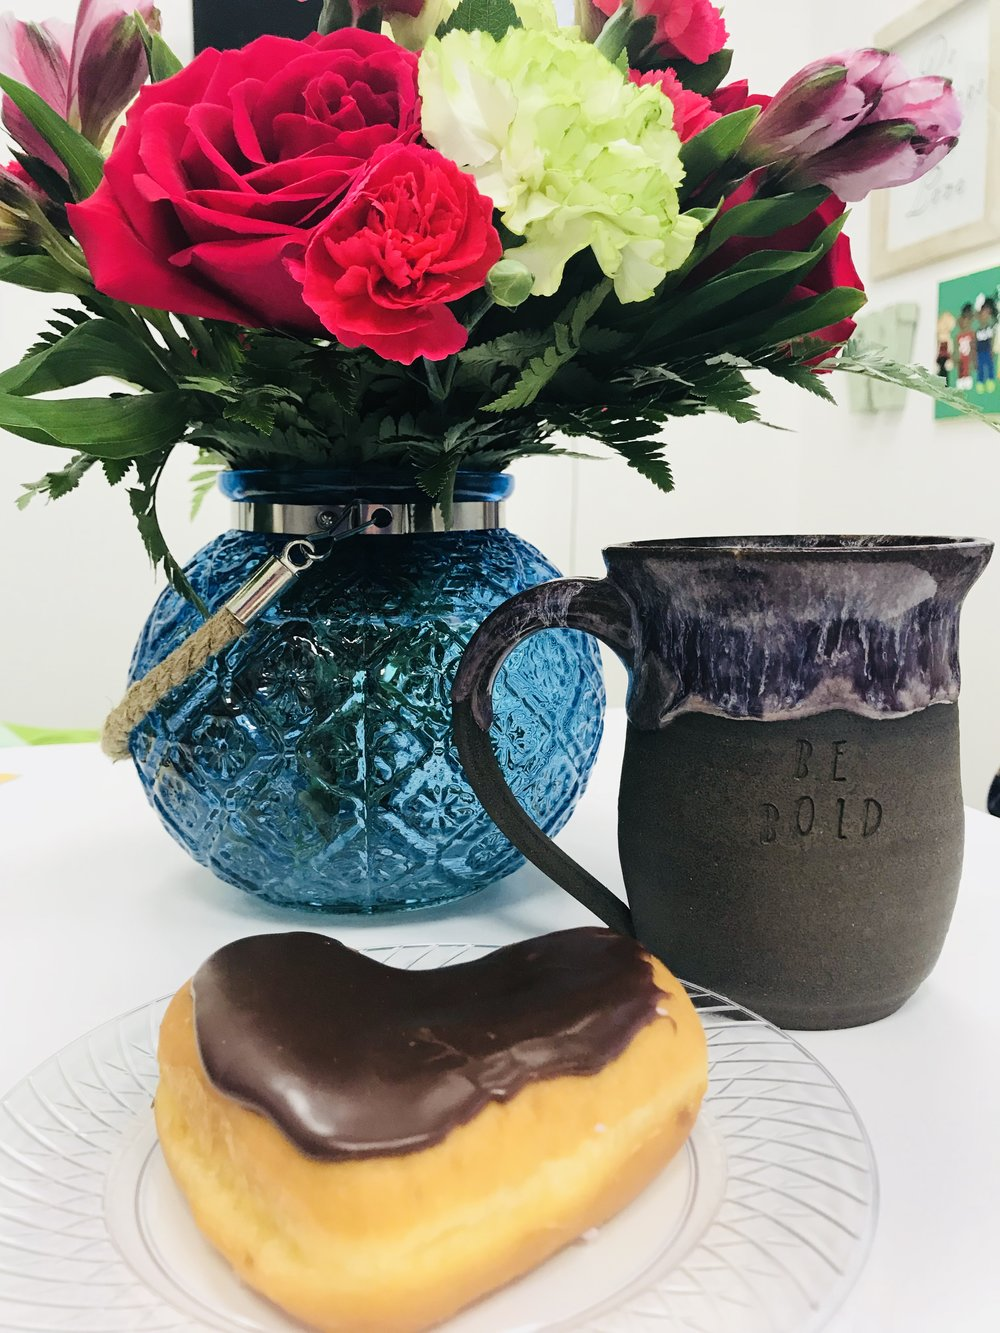 My current desk situation— fav donut (so many carbs around here), coffee and flowers from a sweet friend.